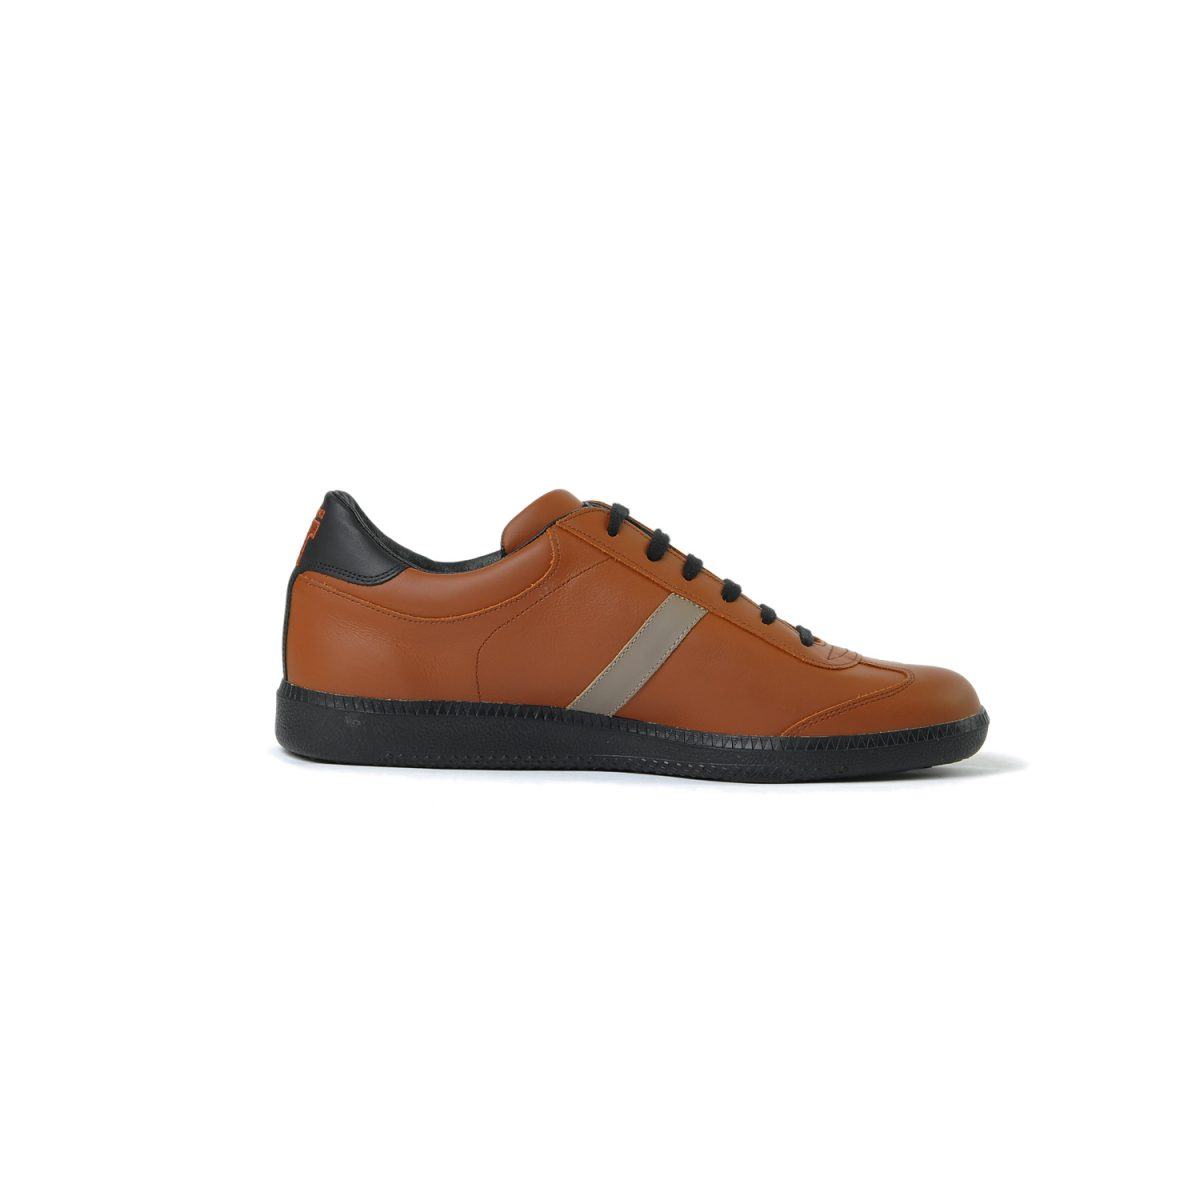 Tisza shoes - Compakt - Mahagony-black-grey-earth